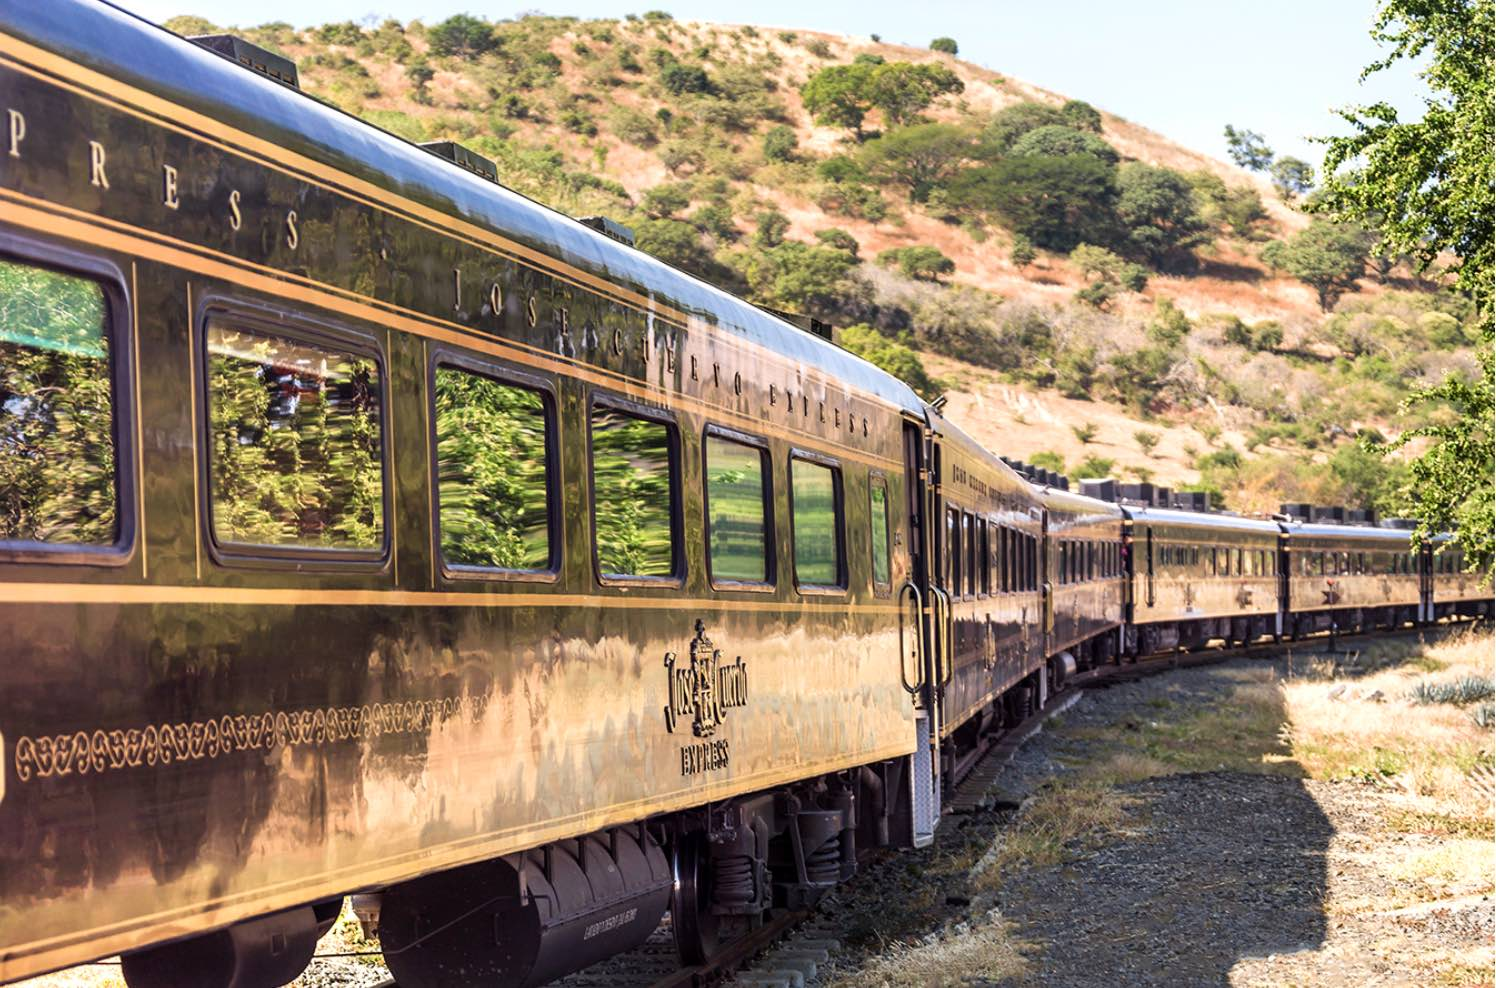 Mexico's Scenic Luxurious $160 'Tequila Train' Ride